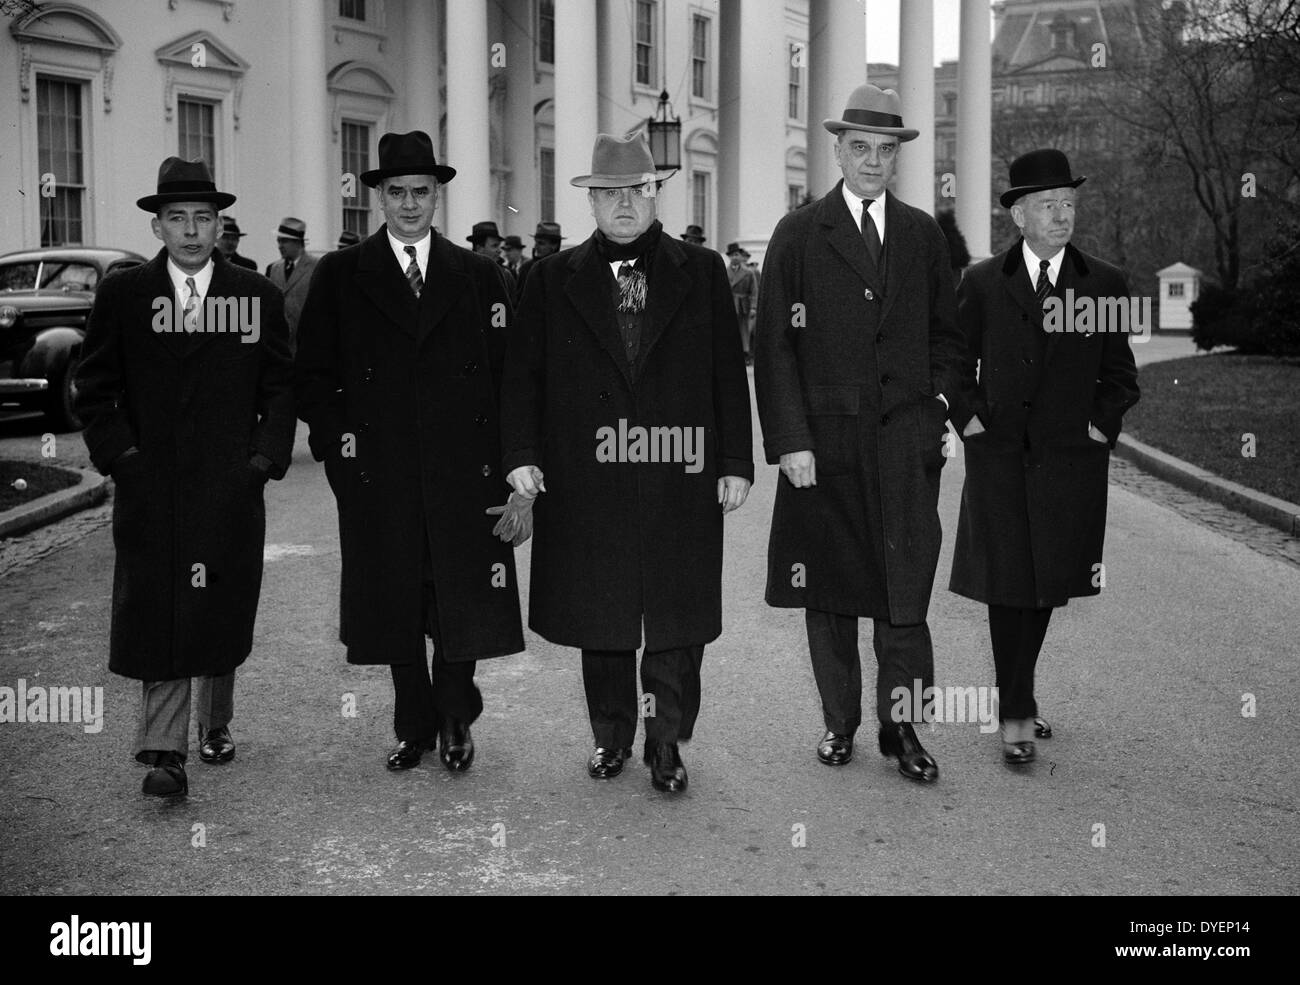 Capital and Labour leaders at White House. Washington, D.C., 19400101 - Stock Image